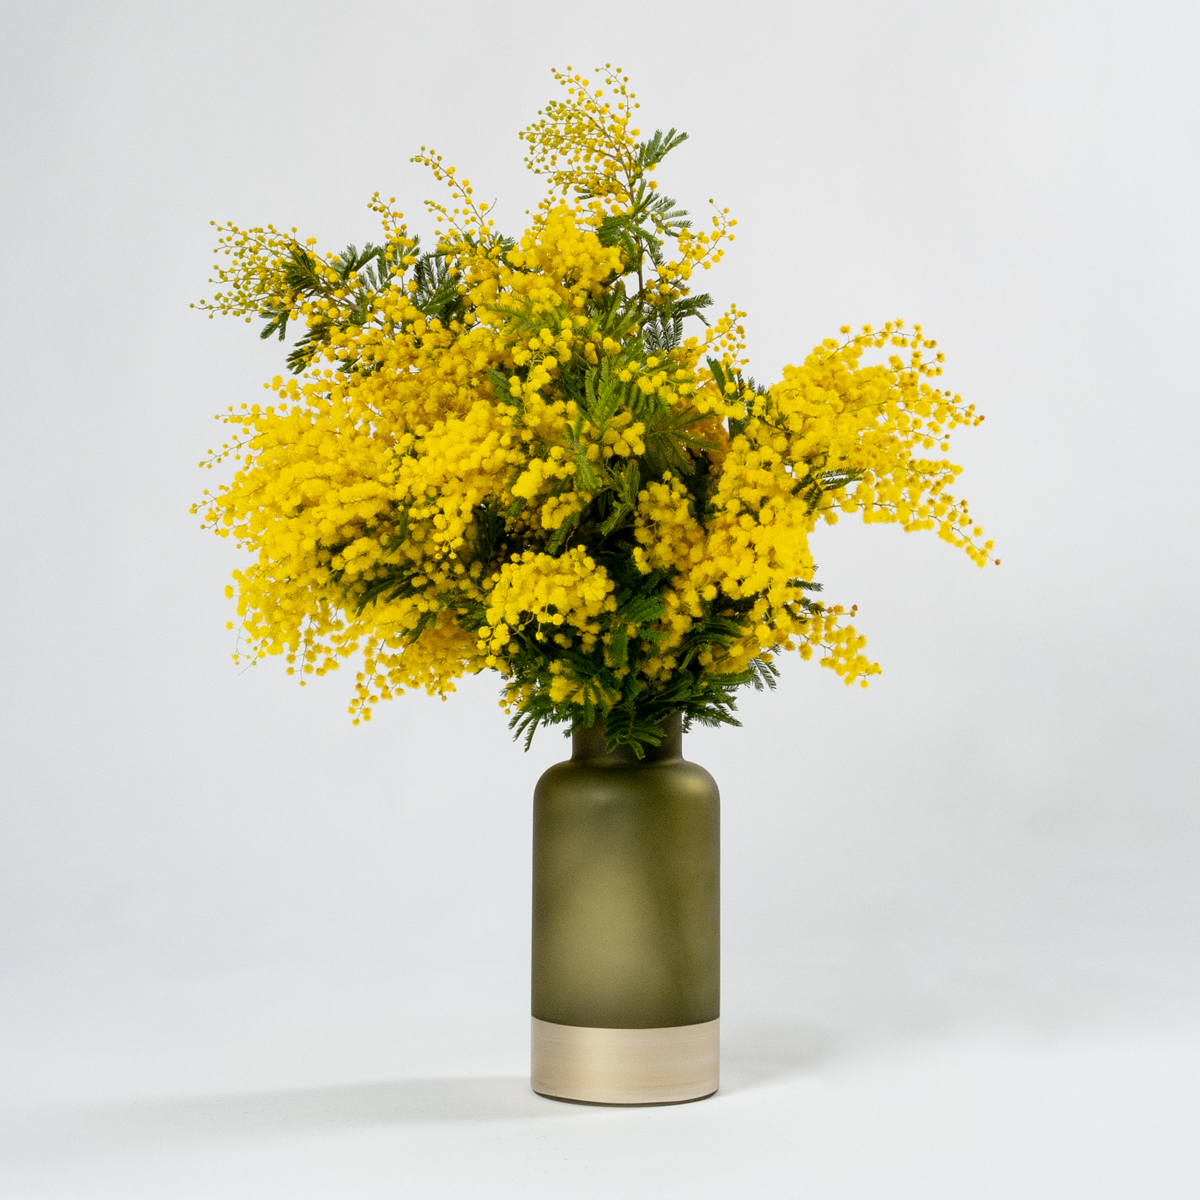 Subscription Flower for the Week - Mimosa